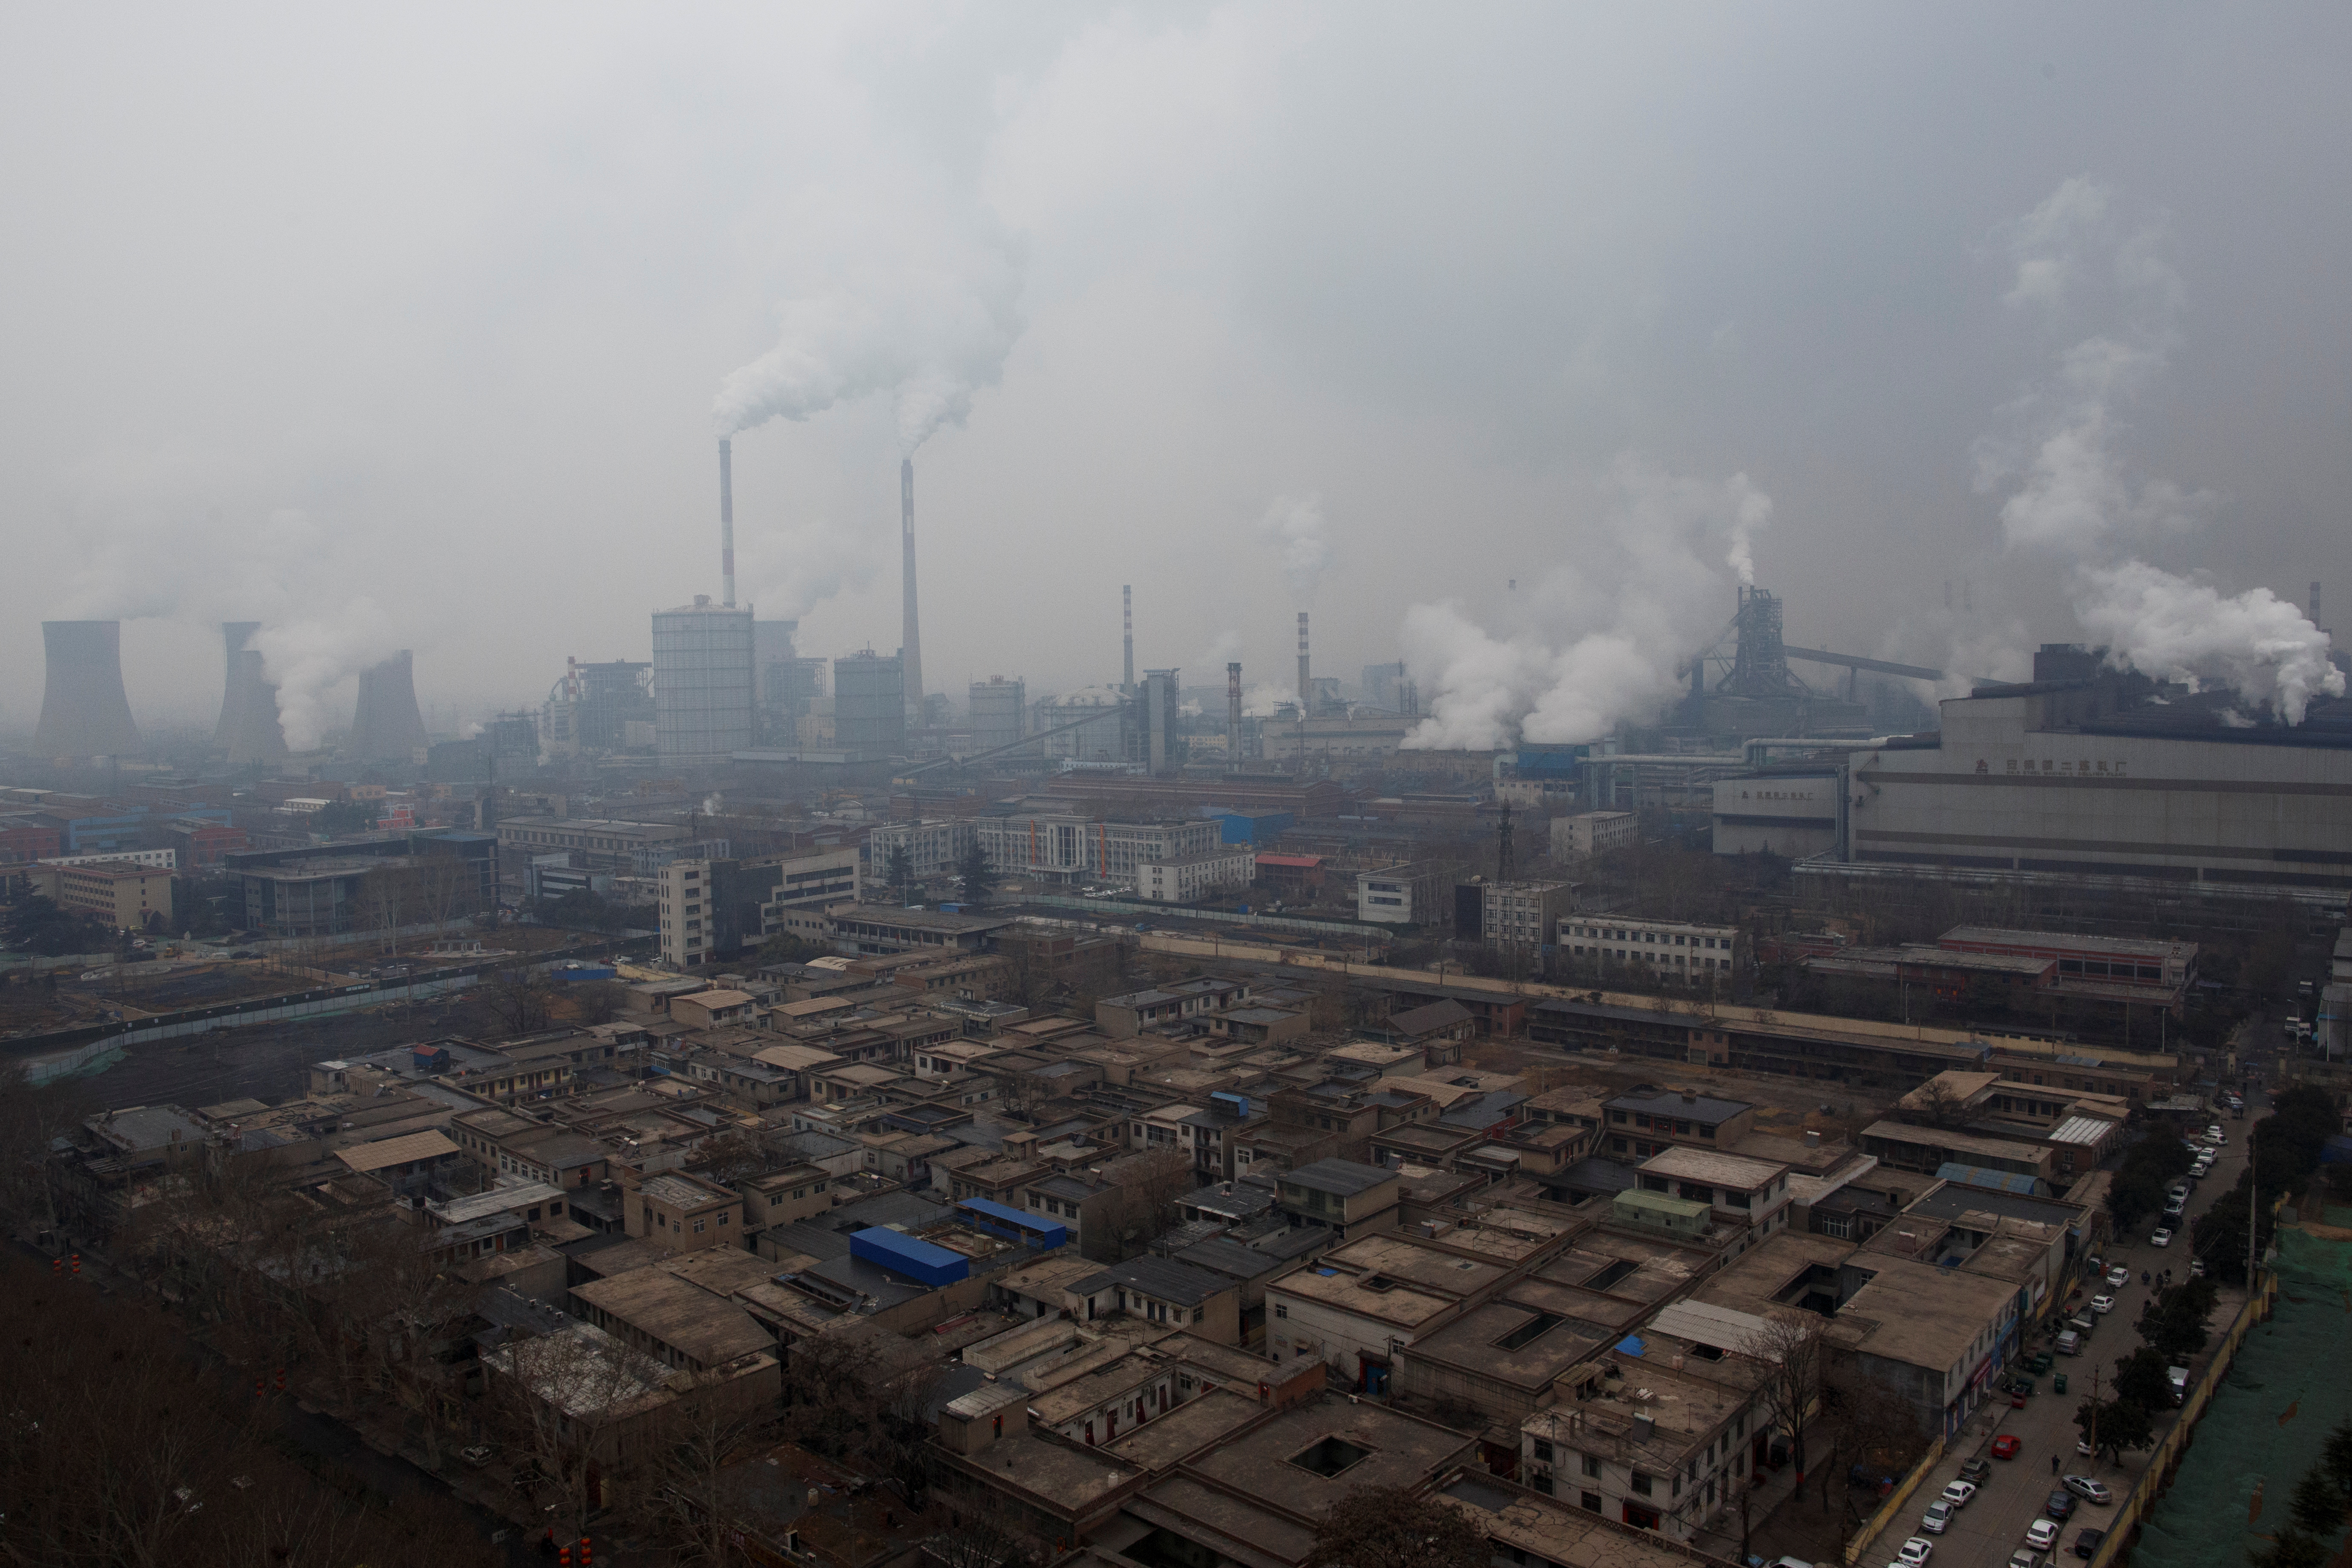 Smoke stacks and cooling towers of a power plant rise above a low-rise neighborhood that borders a steel plant in Anyang, Henan province, China February 18, 2019. REUTERS/Thomas Peter